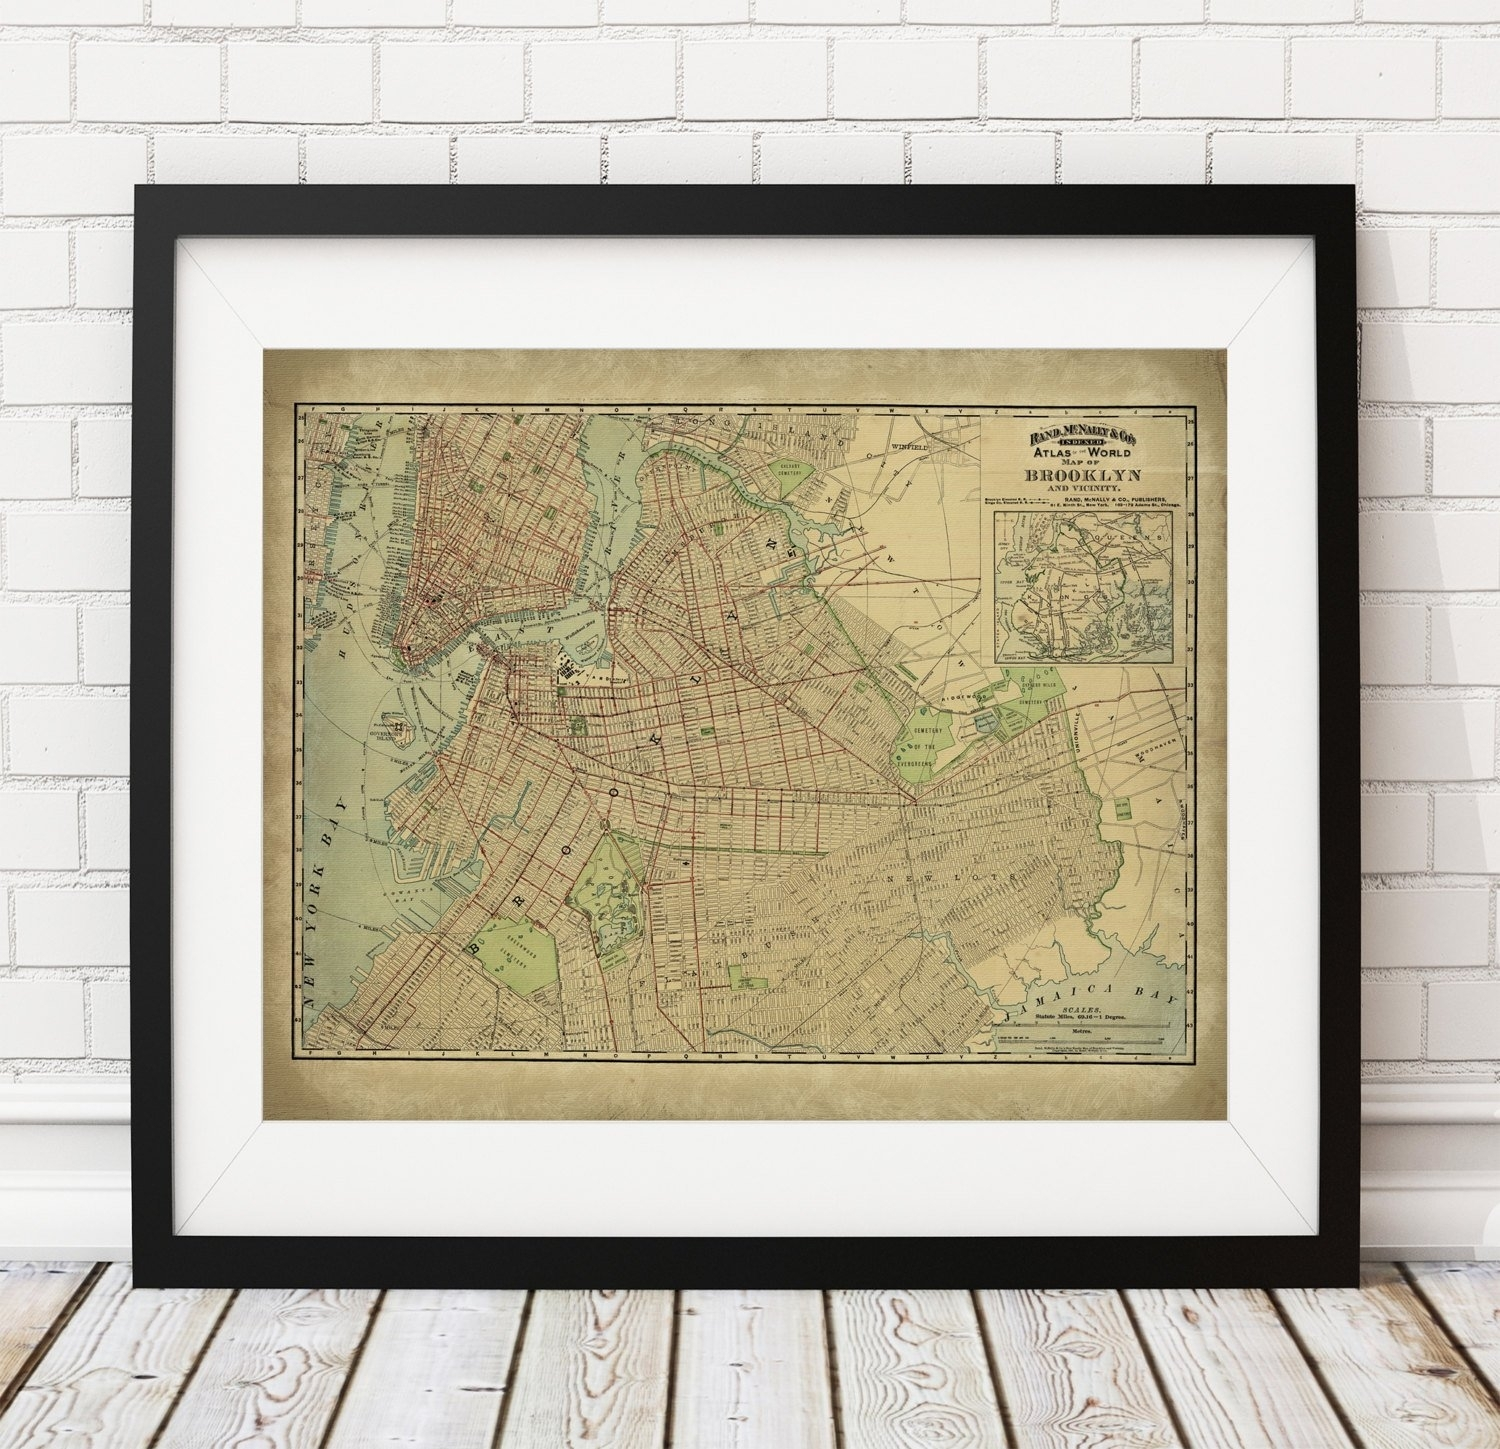 1897 Brooklyn Map Print, Vintage Map Art, Antique Map Wall Decor Intended For New York City Map Wall Art (View 18 of 20)